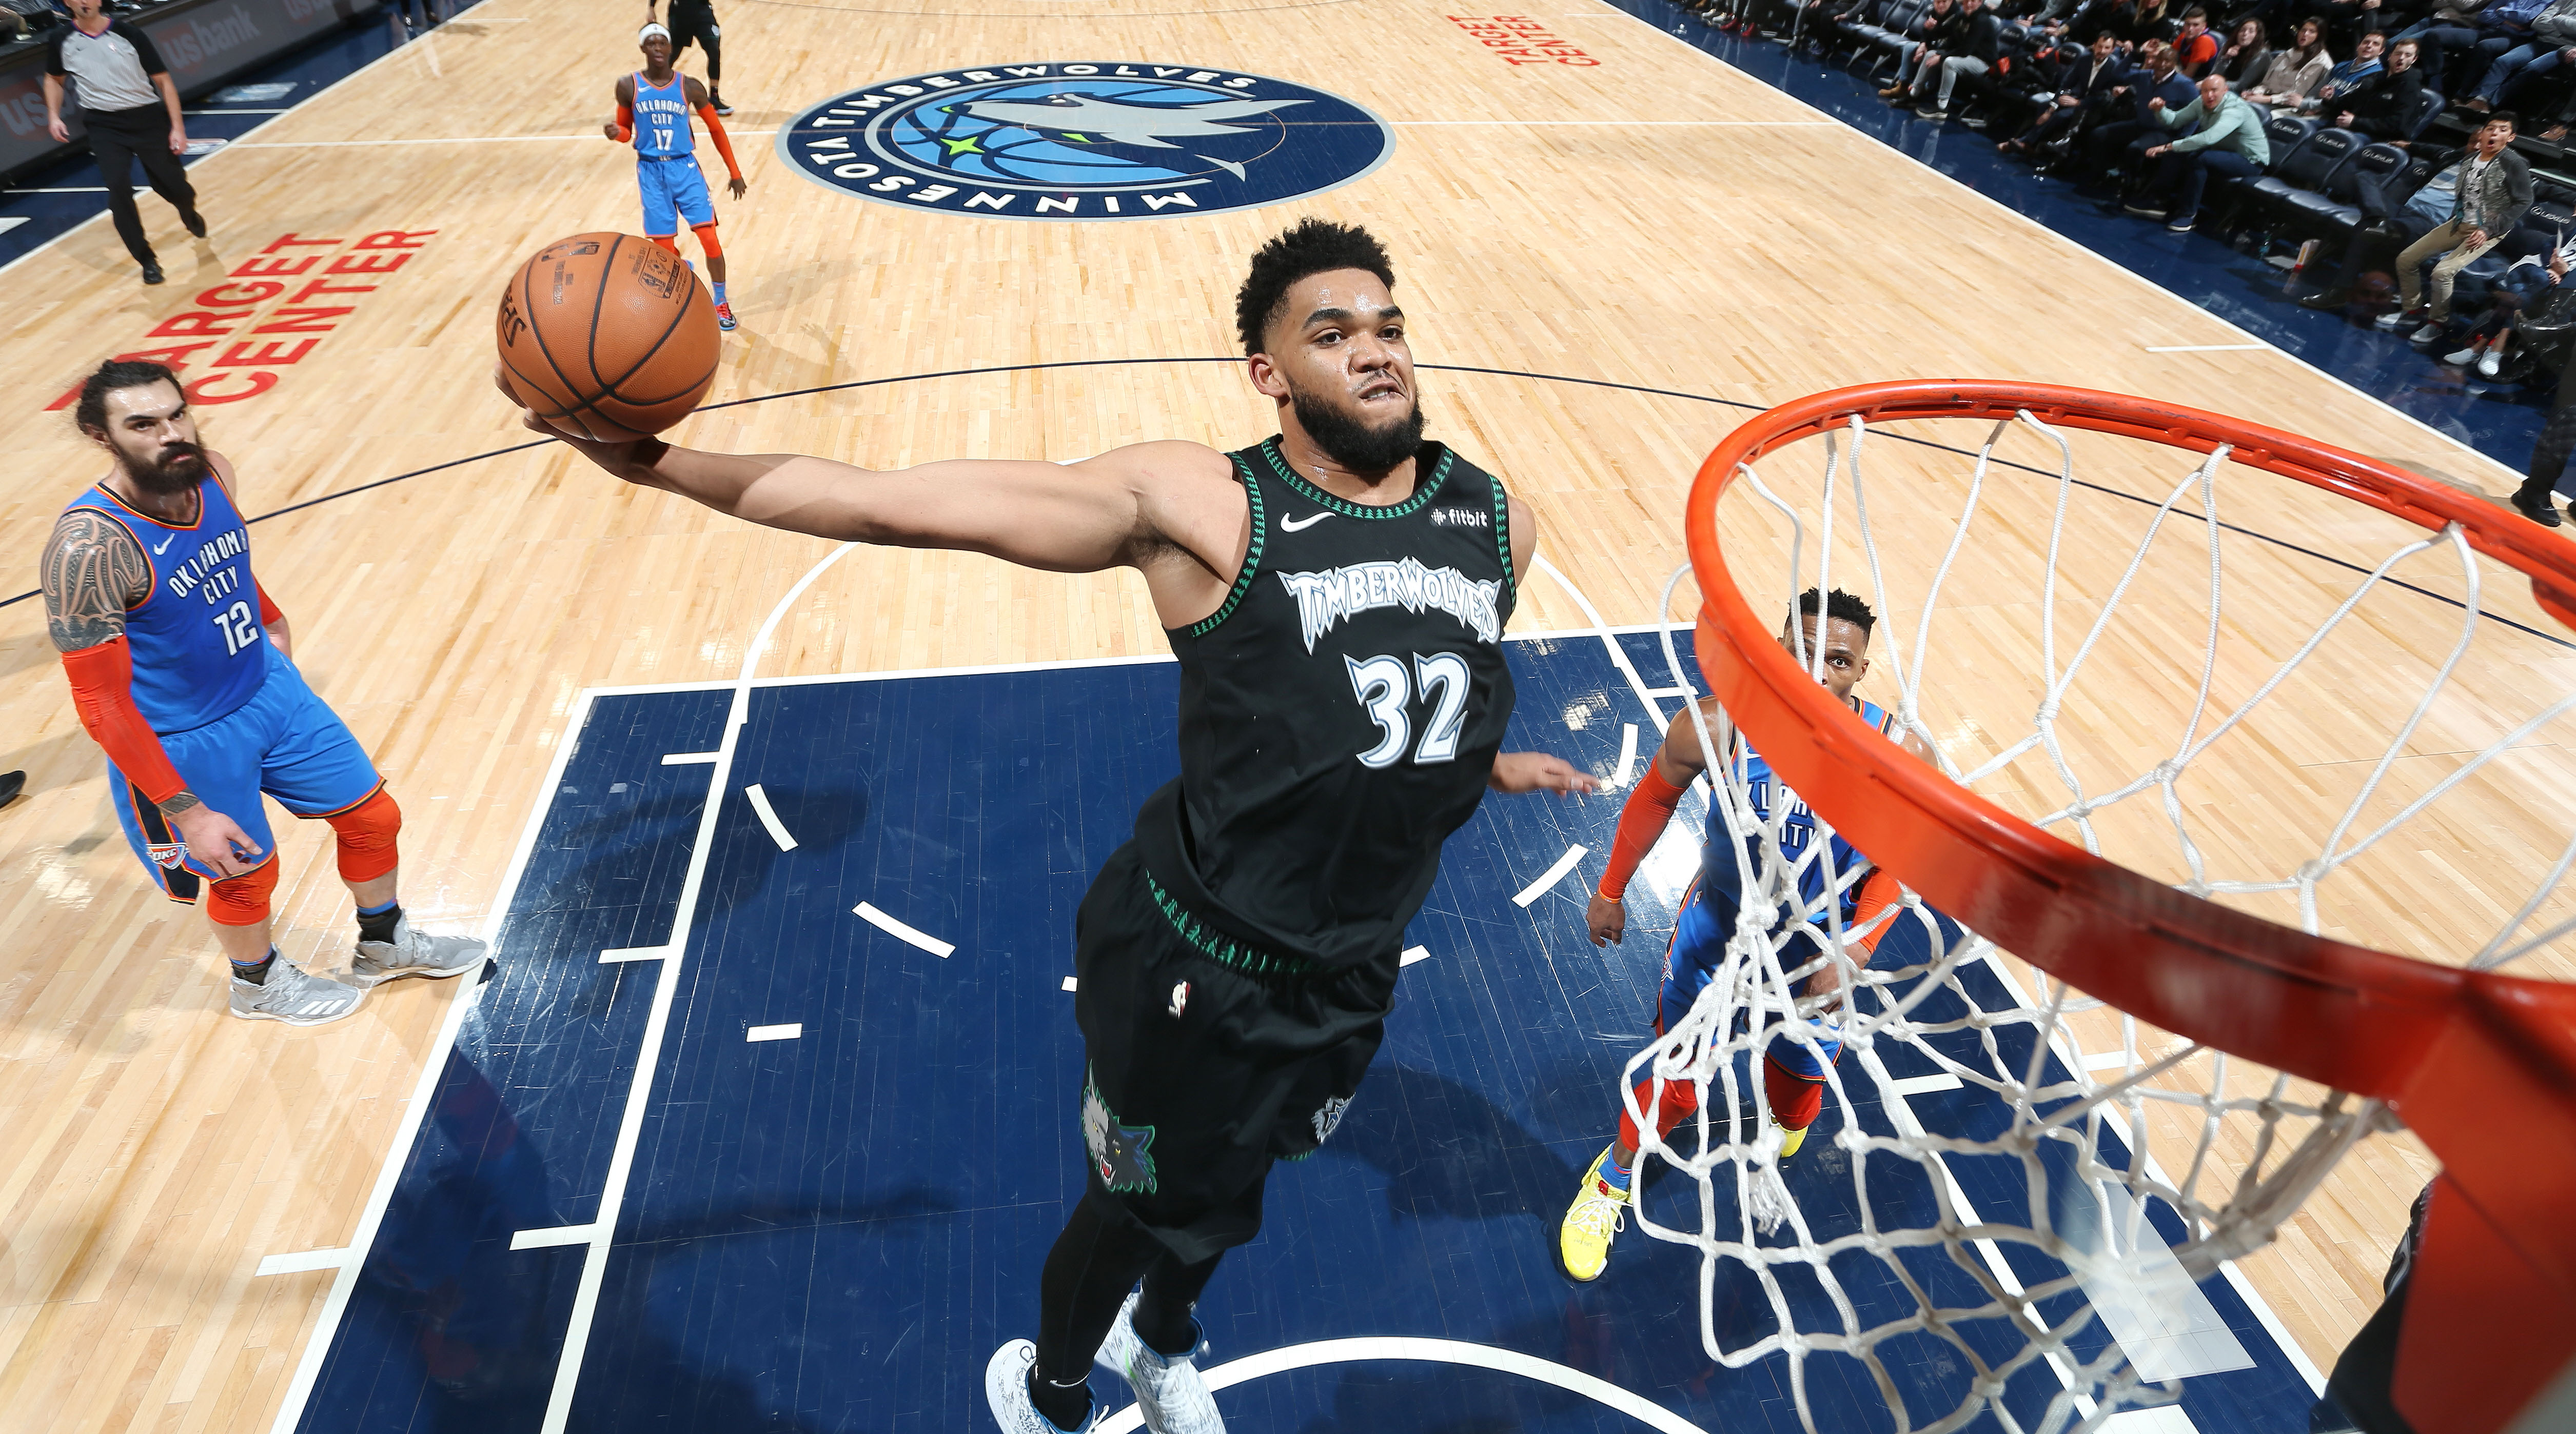 Karl-Anthony Towns has played his best basketball to close a season to forget. With the Timberwolves clearly out of the playoff picture, he's embraced his place at the center of Minnesota.